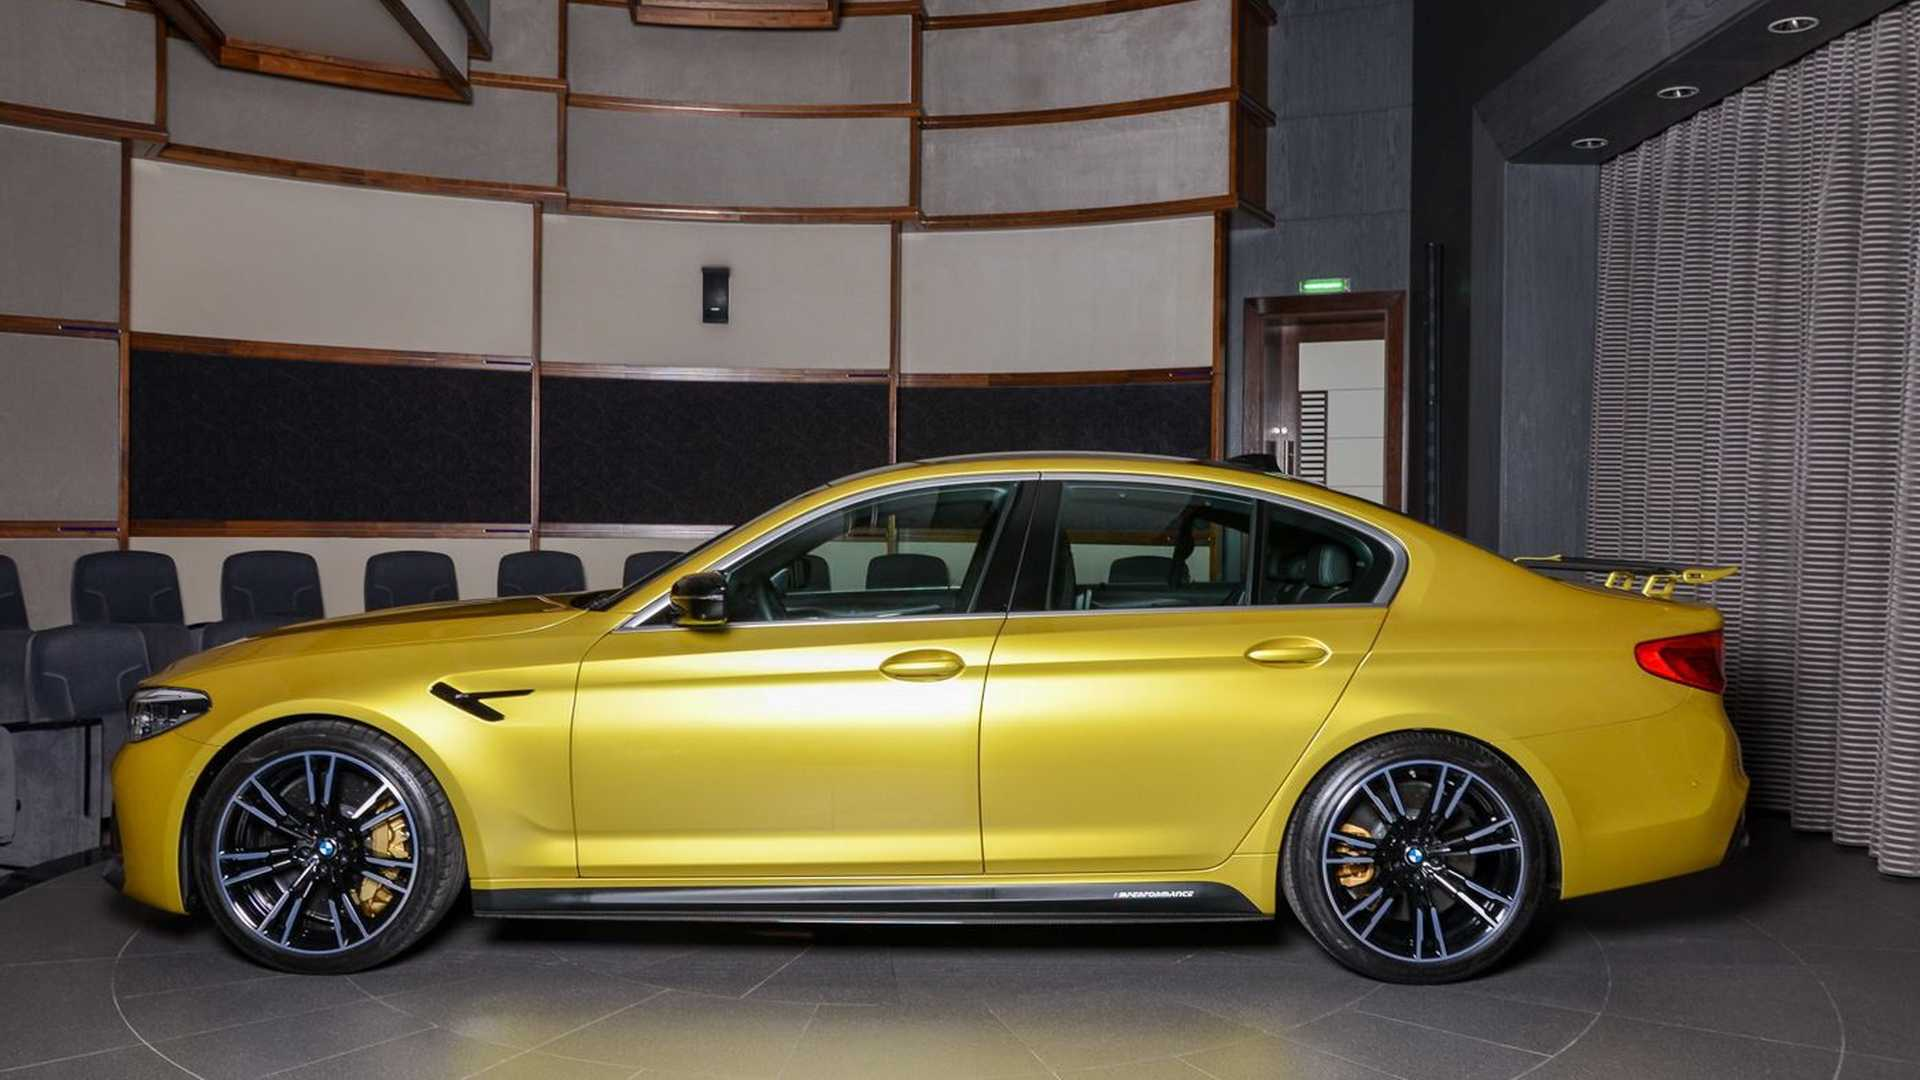 bmw-m5-competition-austin-yellow-3.jpg